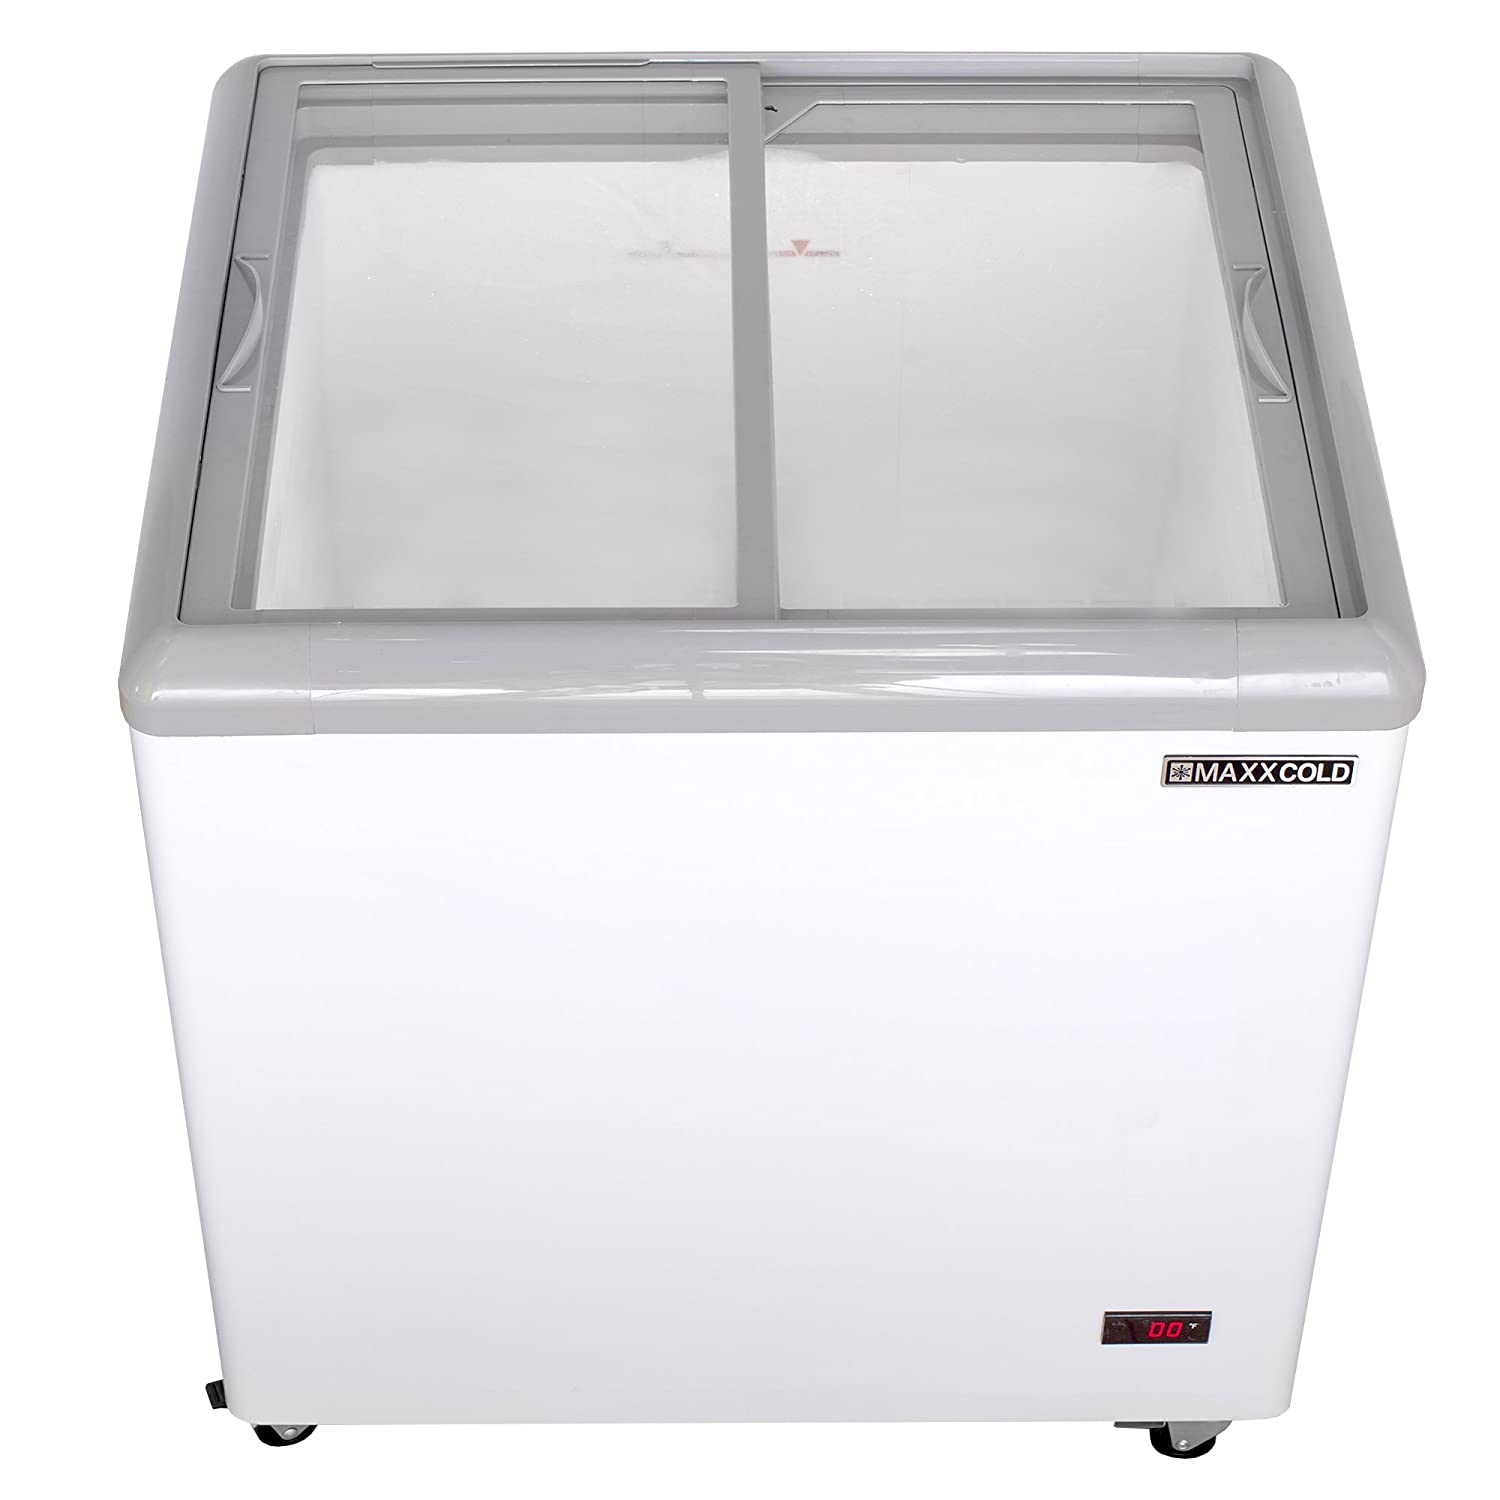 Maxx Cold MXF31F 31 7.5 cu ft Commercial Mobile Ice Cream Display Freezer